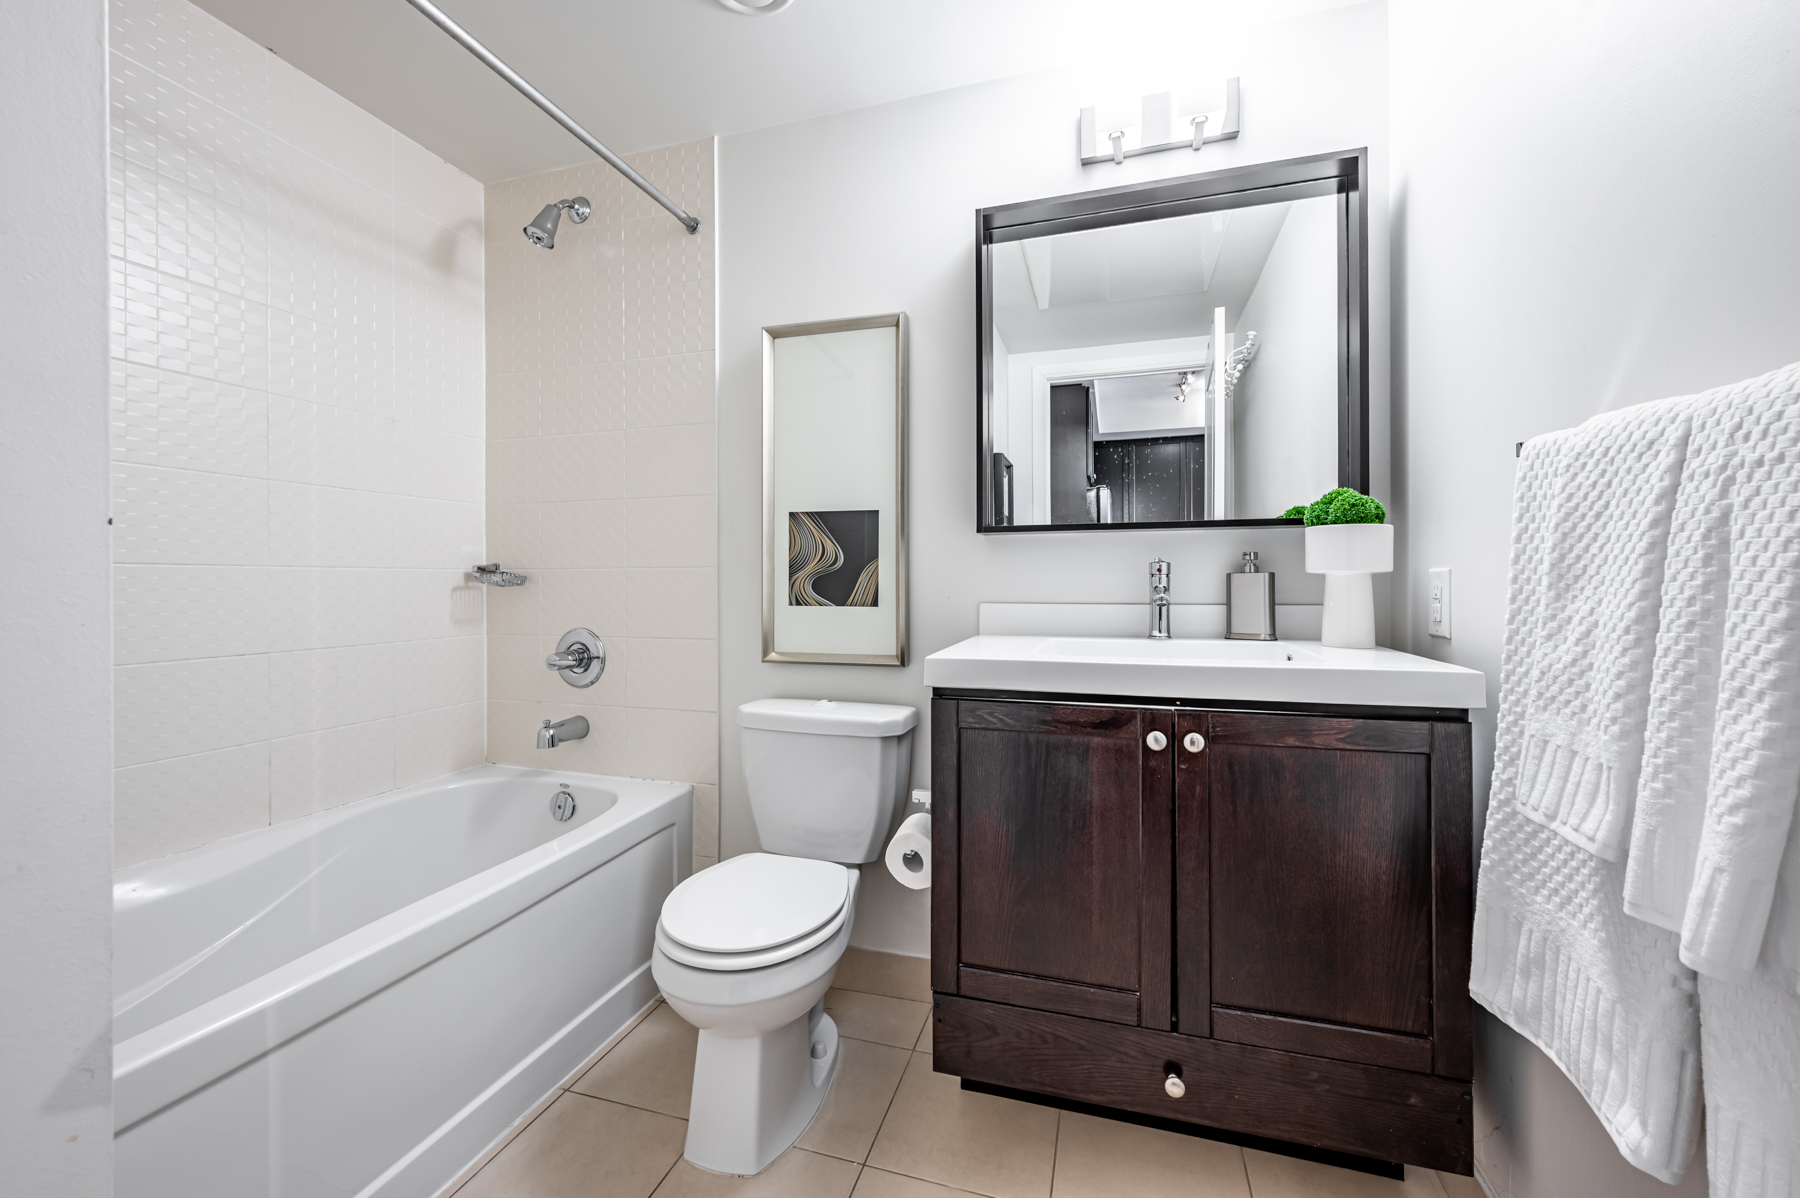 White condo bathroom with brown accents.